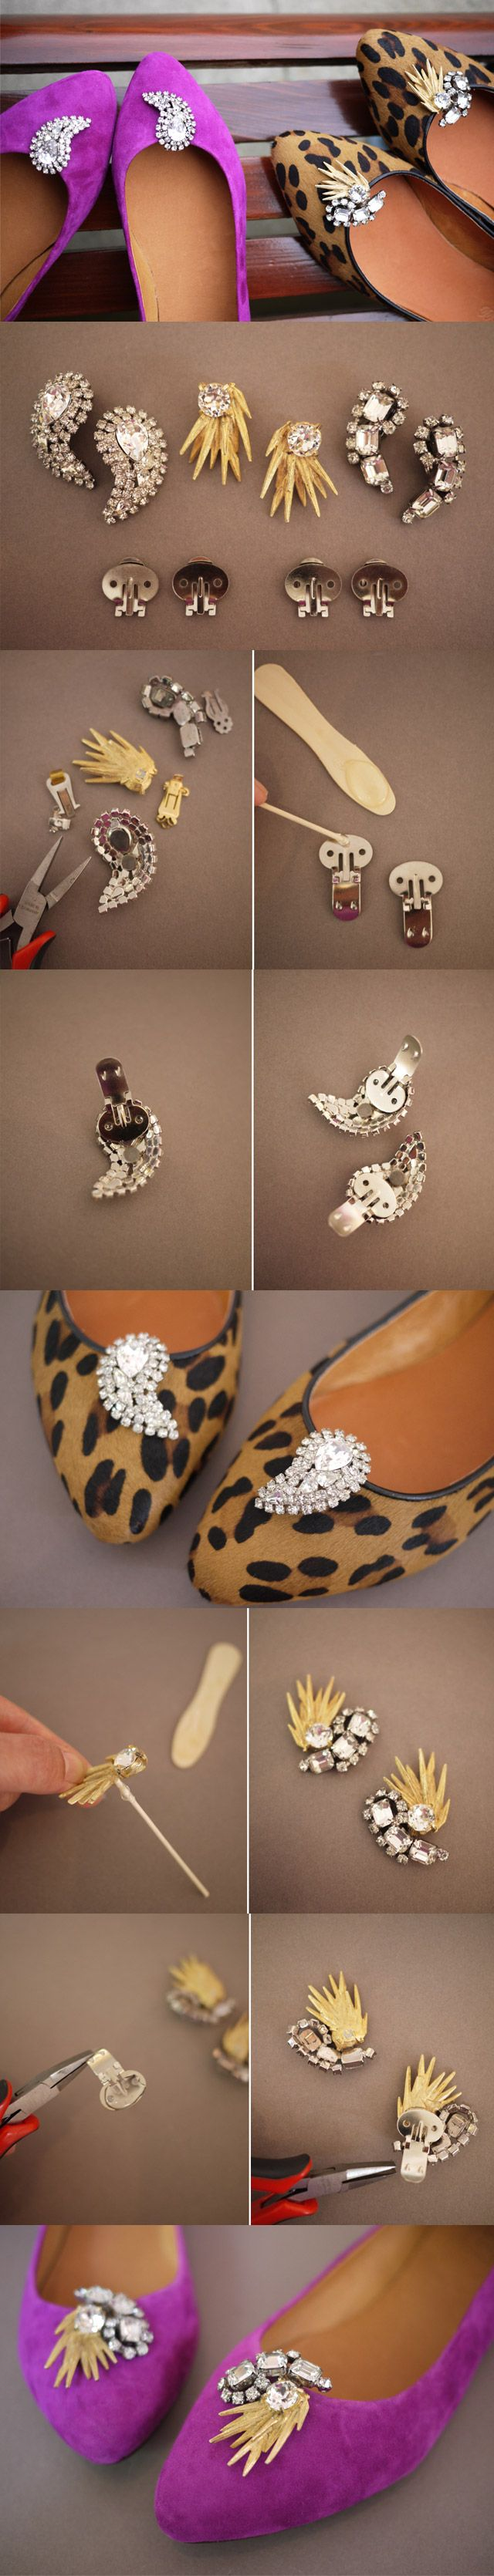 Shoe clips are a really simple way to make casual shoes more dressy without having to buy a whole new pair.